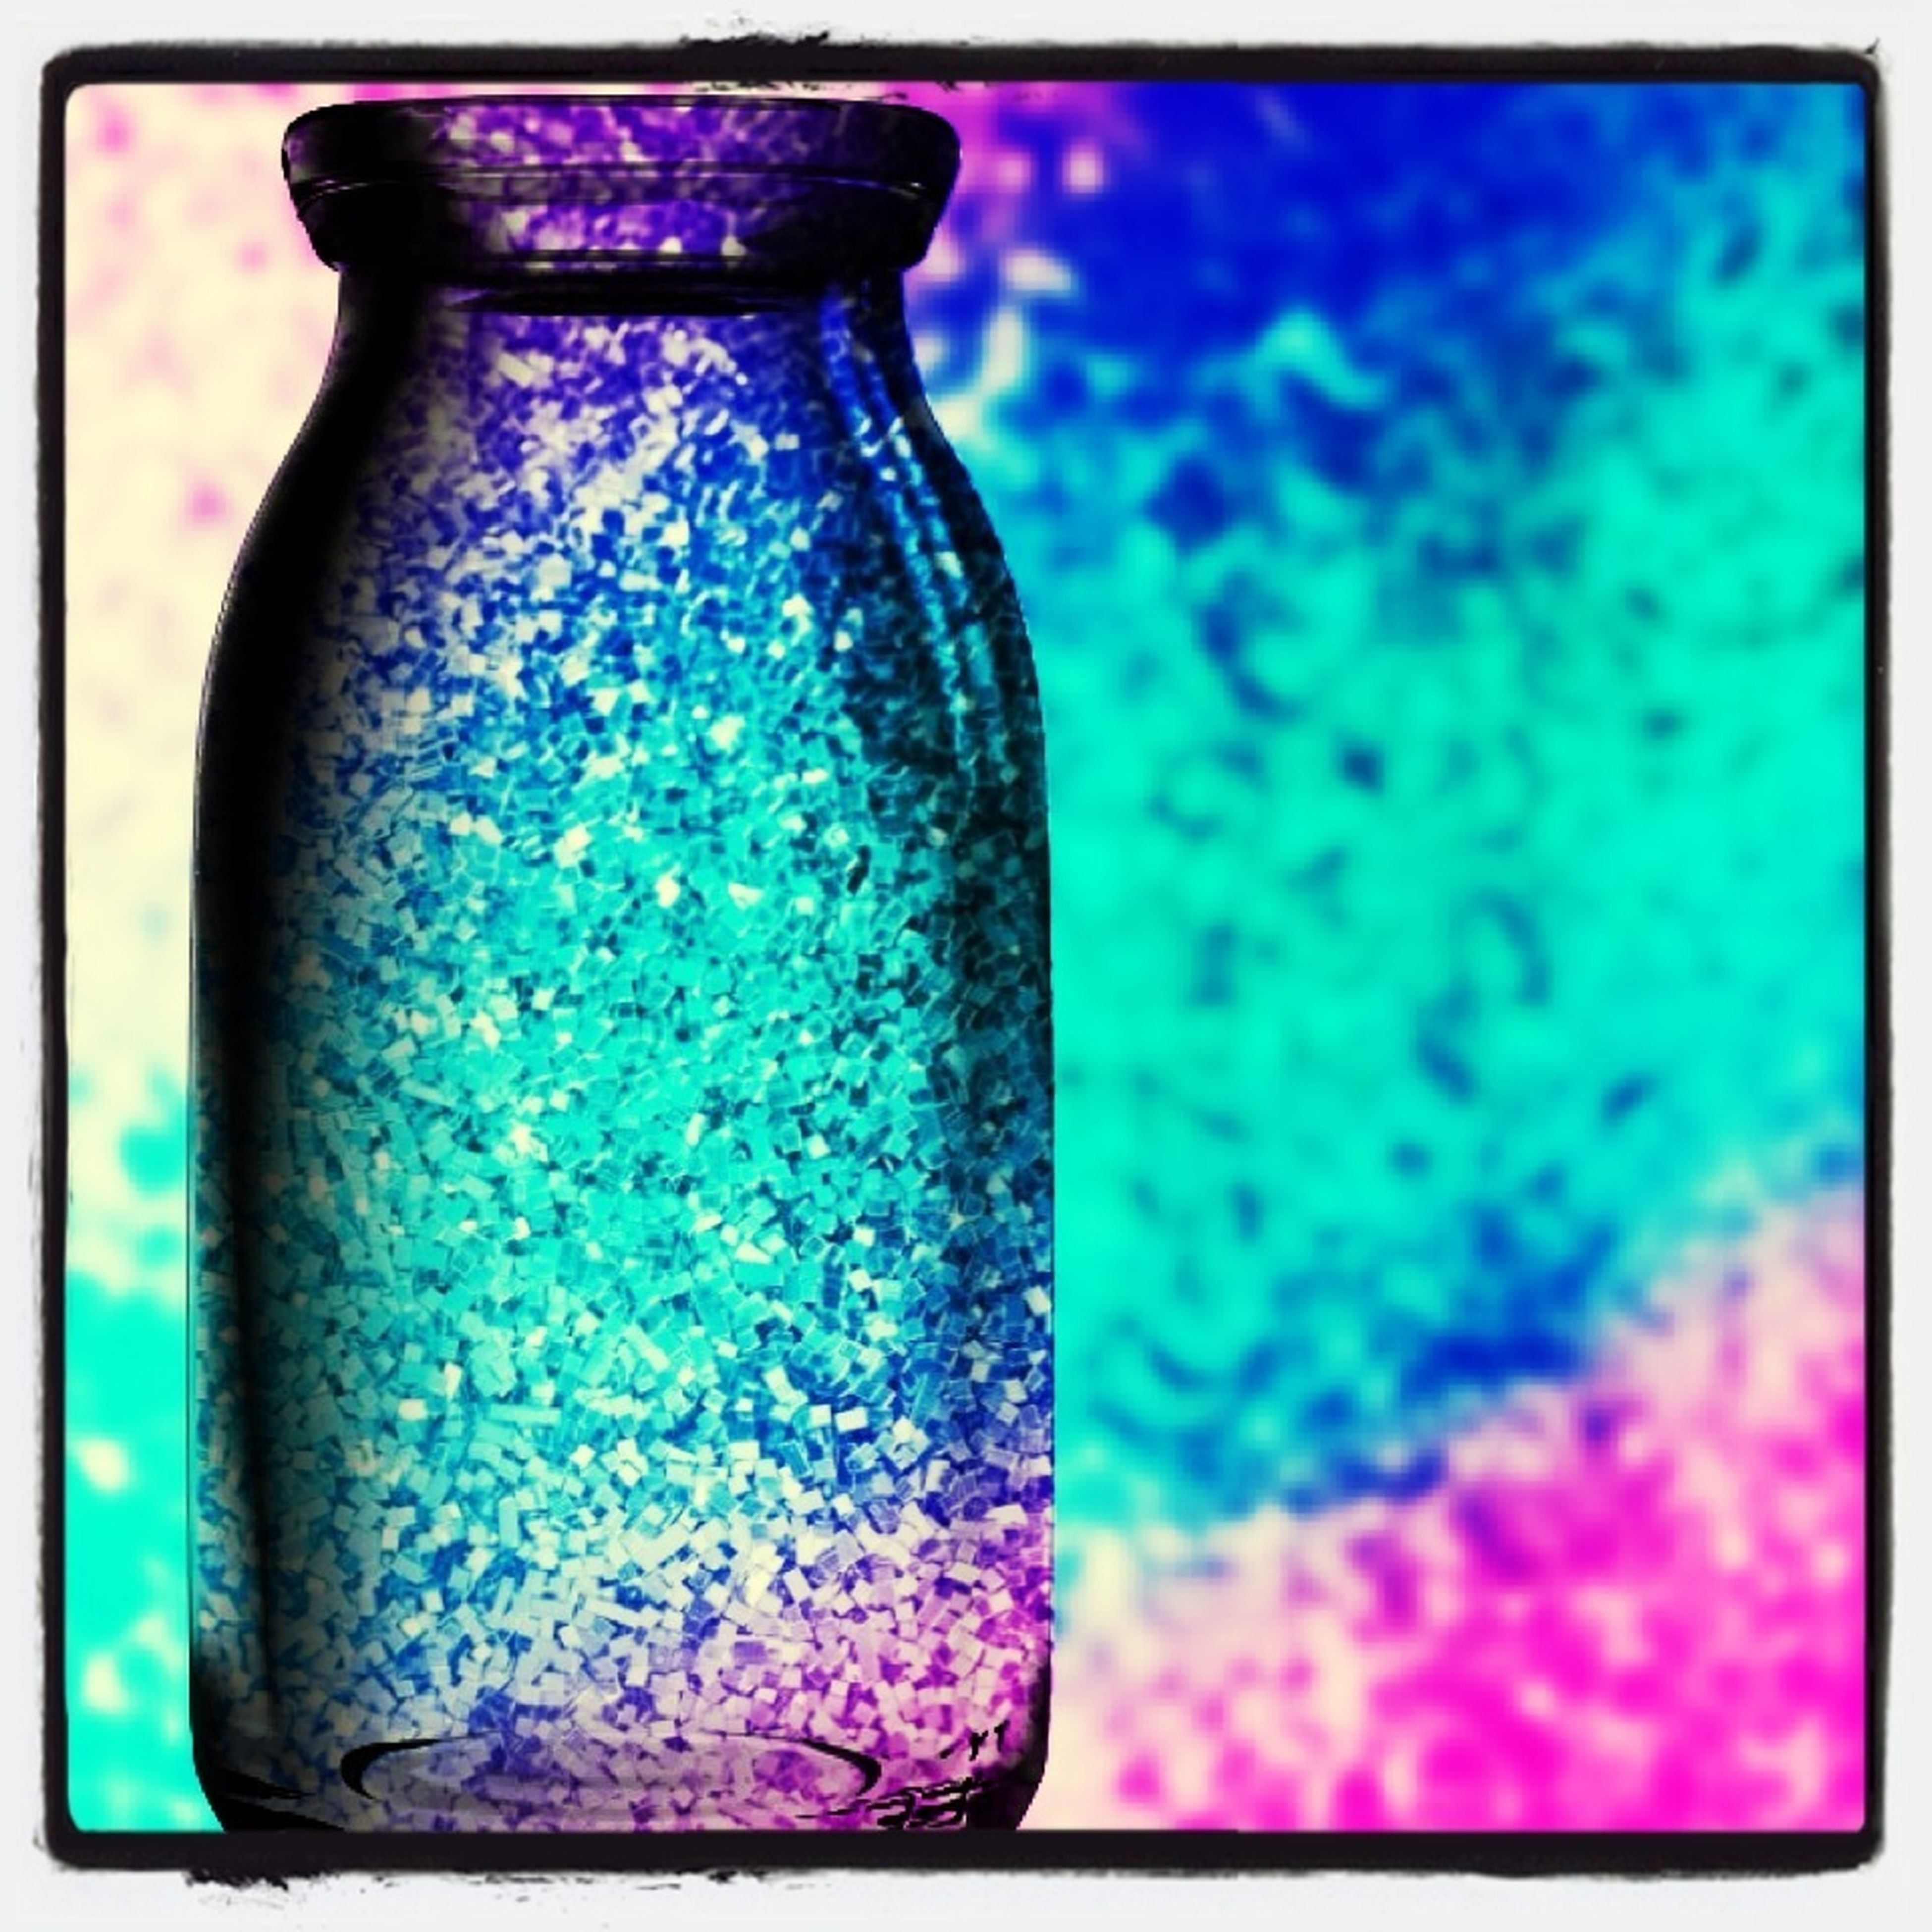 blue, transfer print, auto post production filter, close-up, indoors, purple, multi colored, still life, focus on foreground, glass - material, single object, paint, selective focus, no people, day, transparent, textured, wall - building feature, turquoise colored